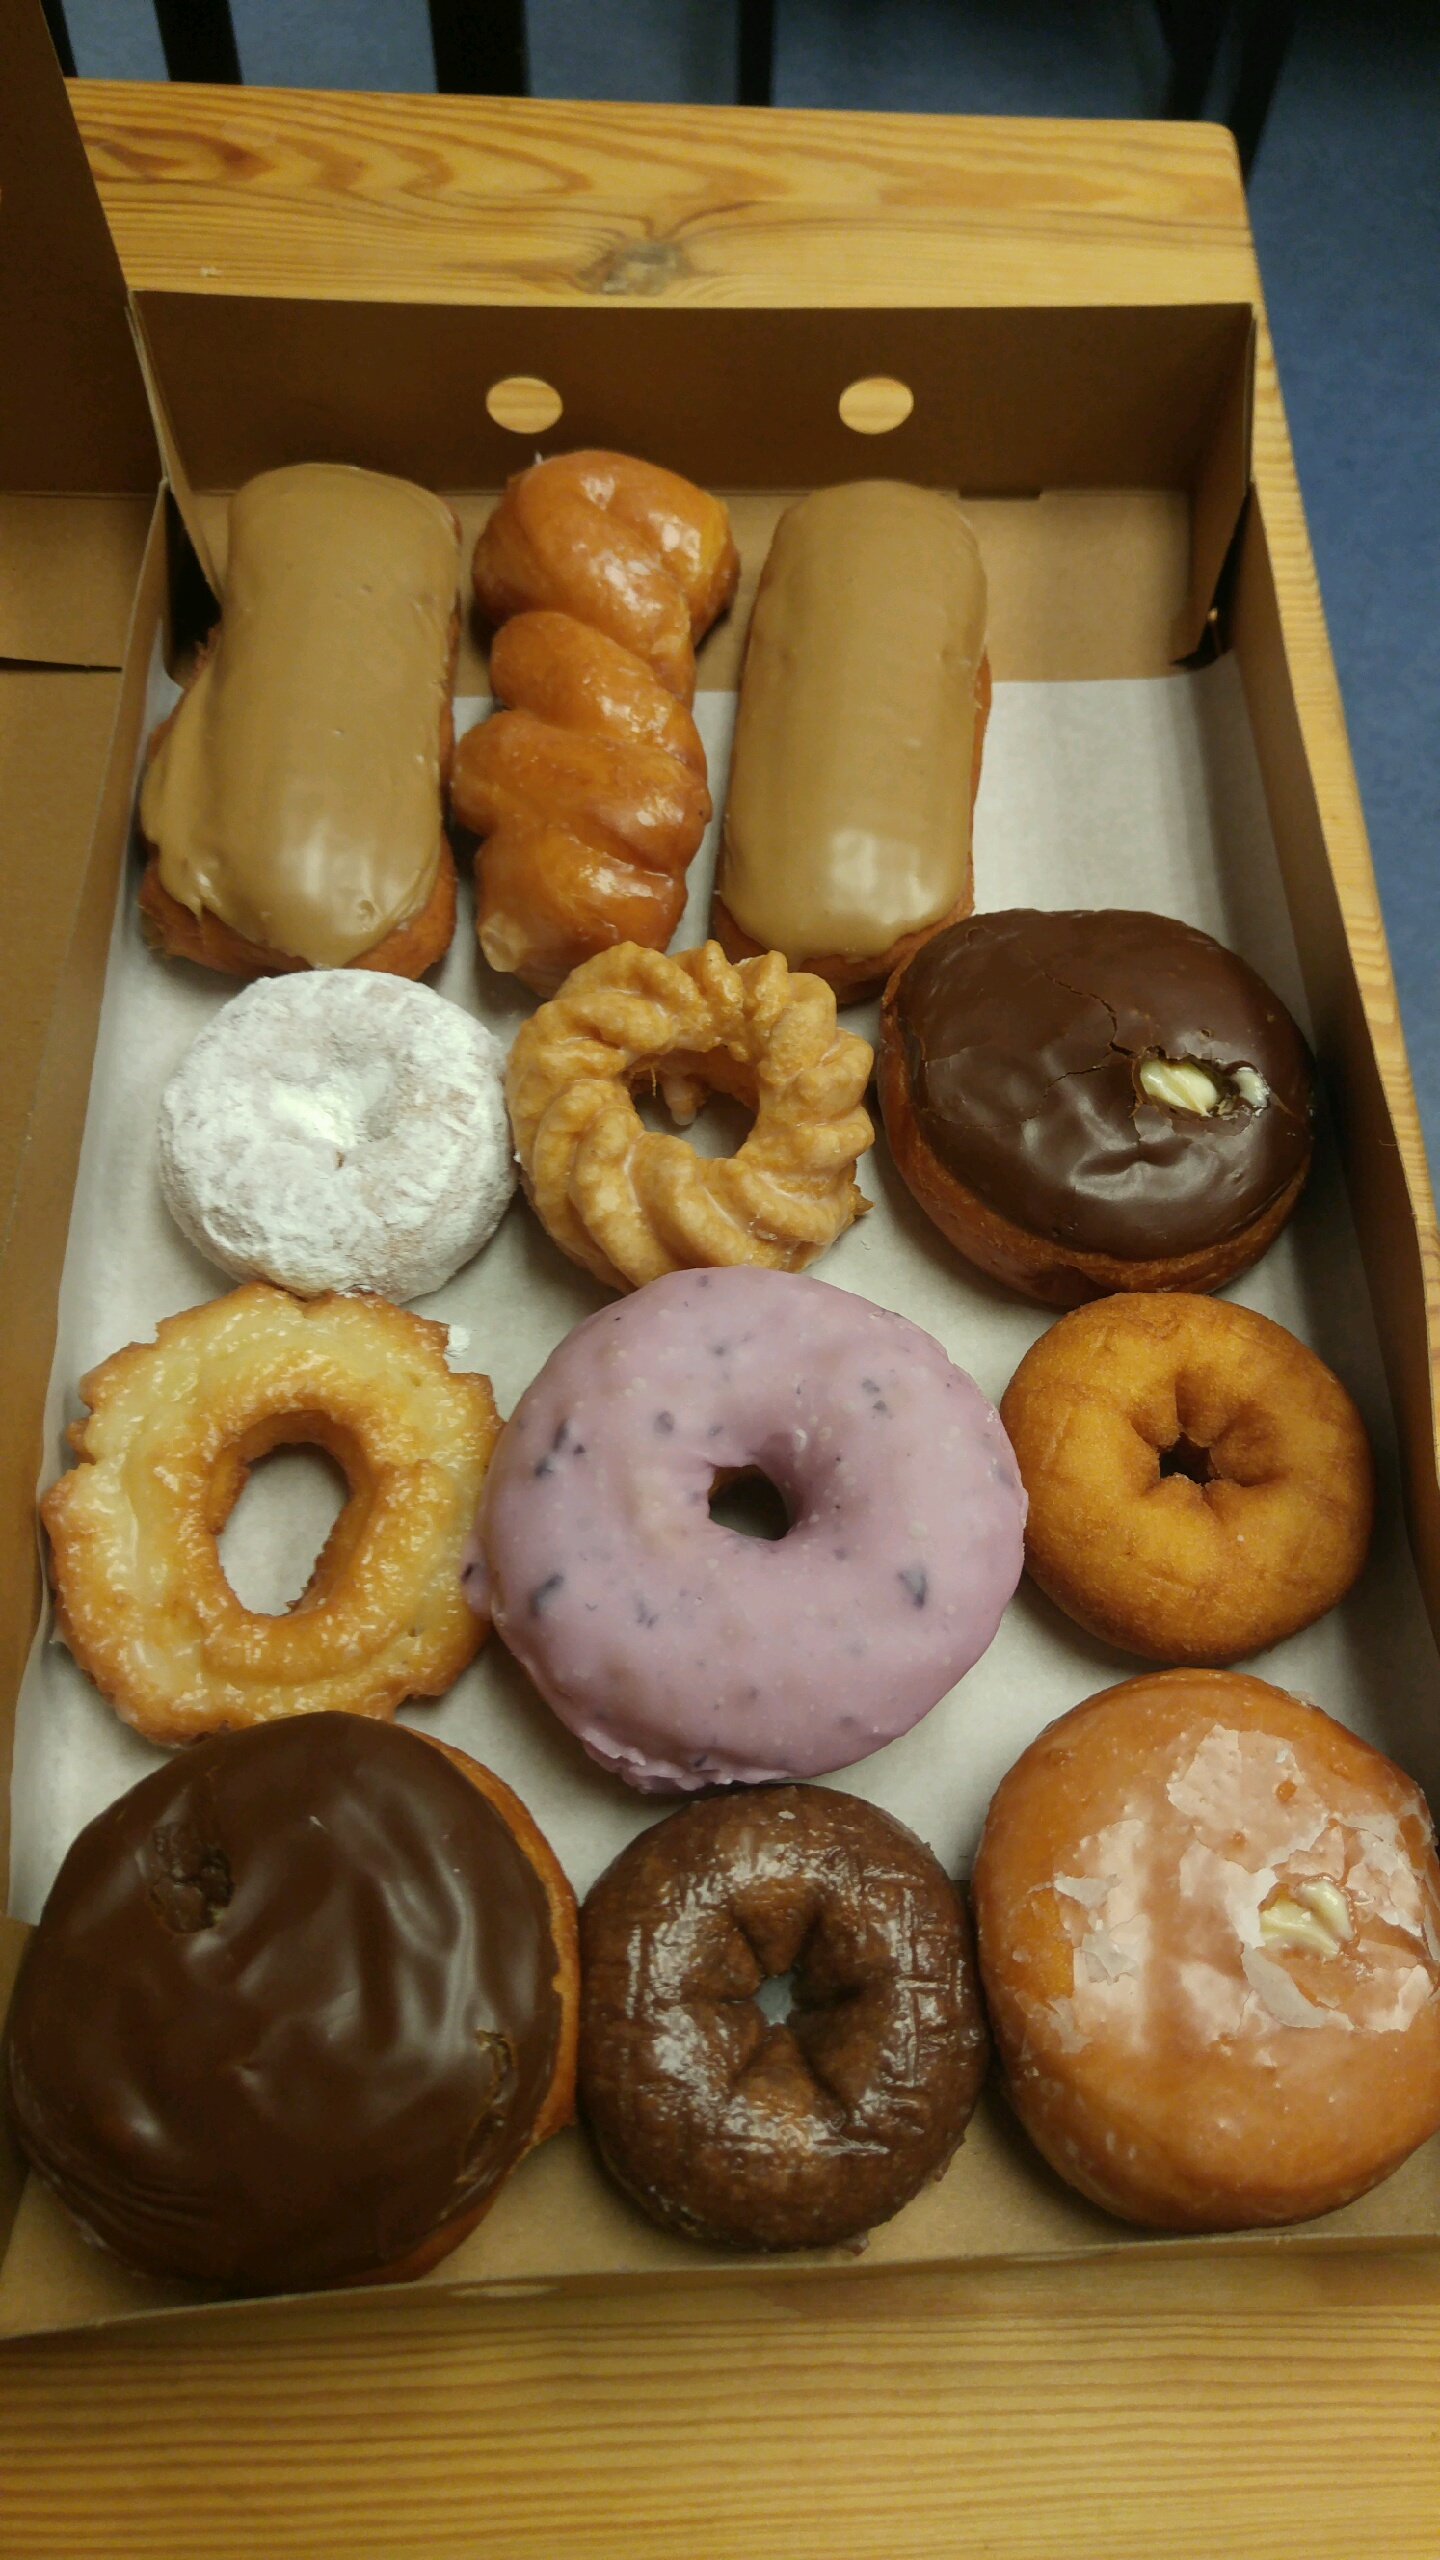 donut factory Jupiter donut factory jupiter, fl 33458 we are the fastest growing family owned donut shop in florida and we are looking for people that want to grow with us.